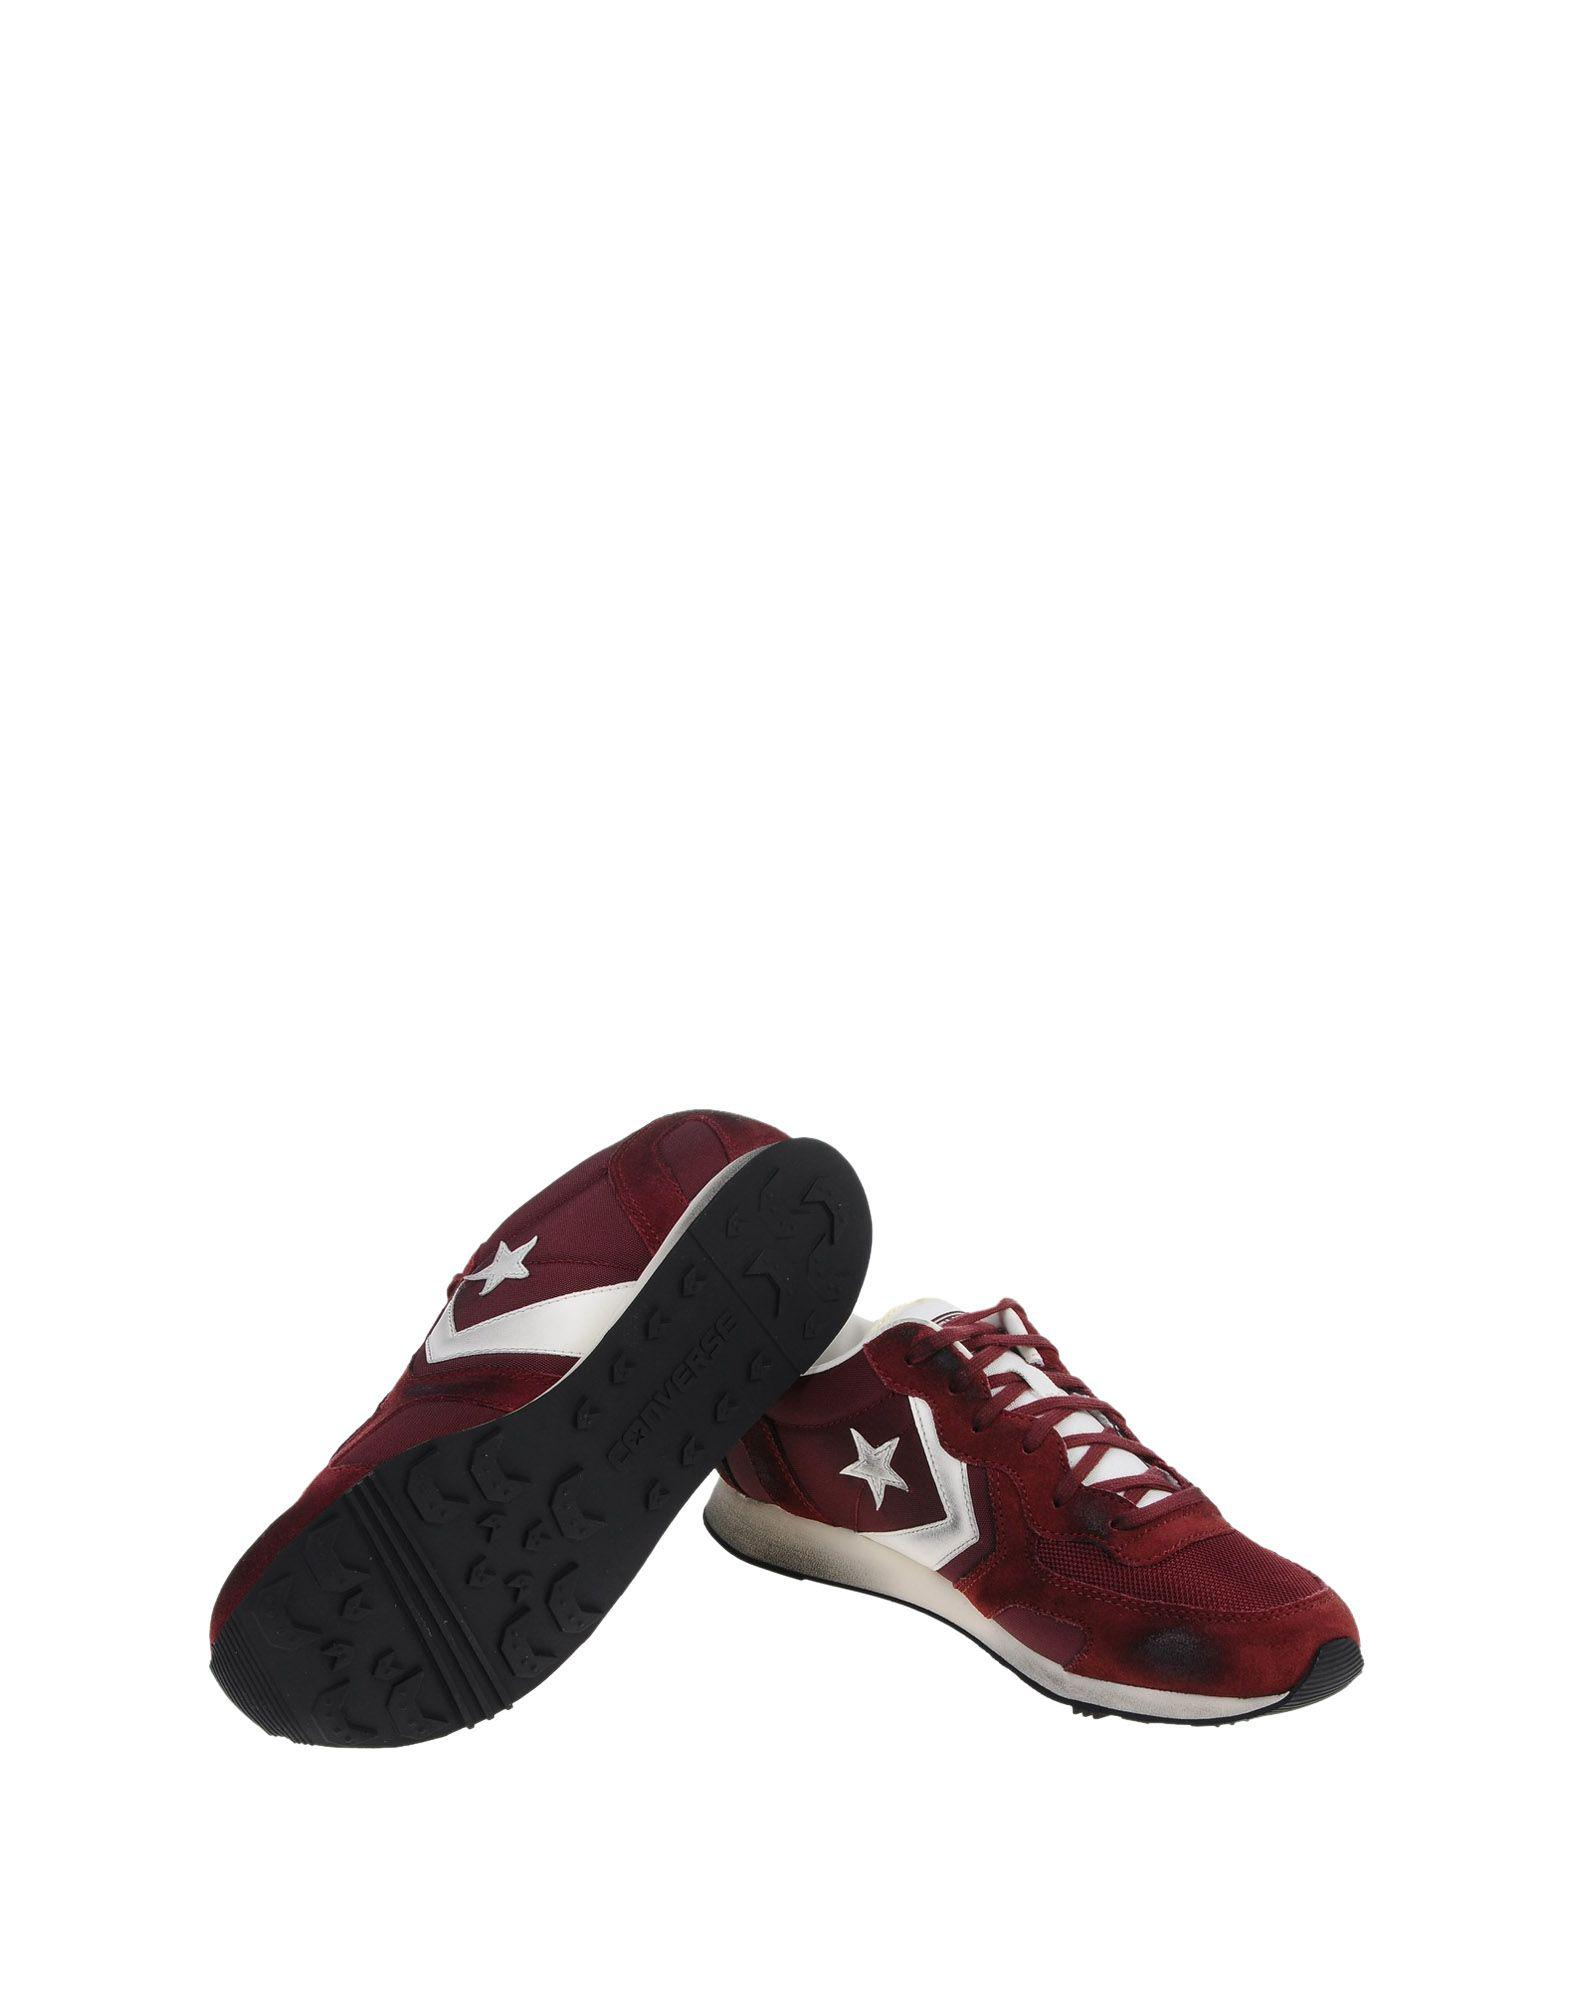 Converse Cons Leather Low Tops Amp Sneakers In Maroon